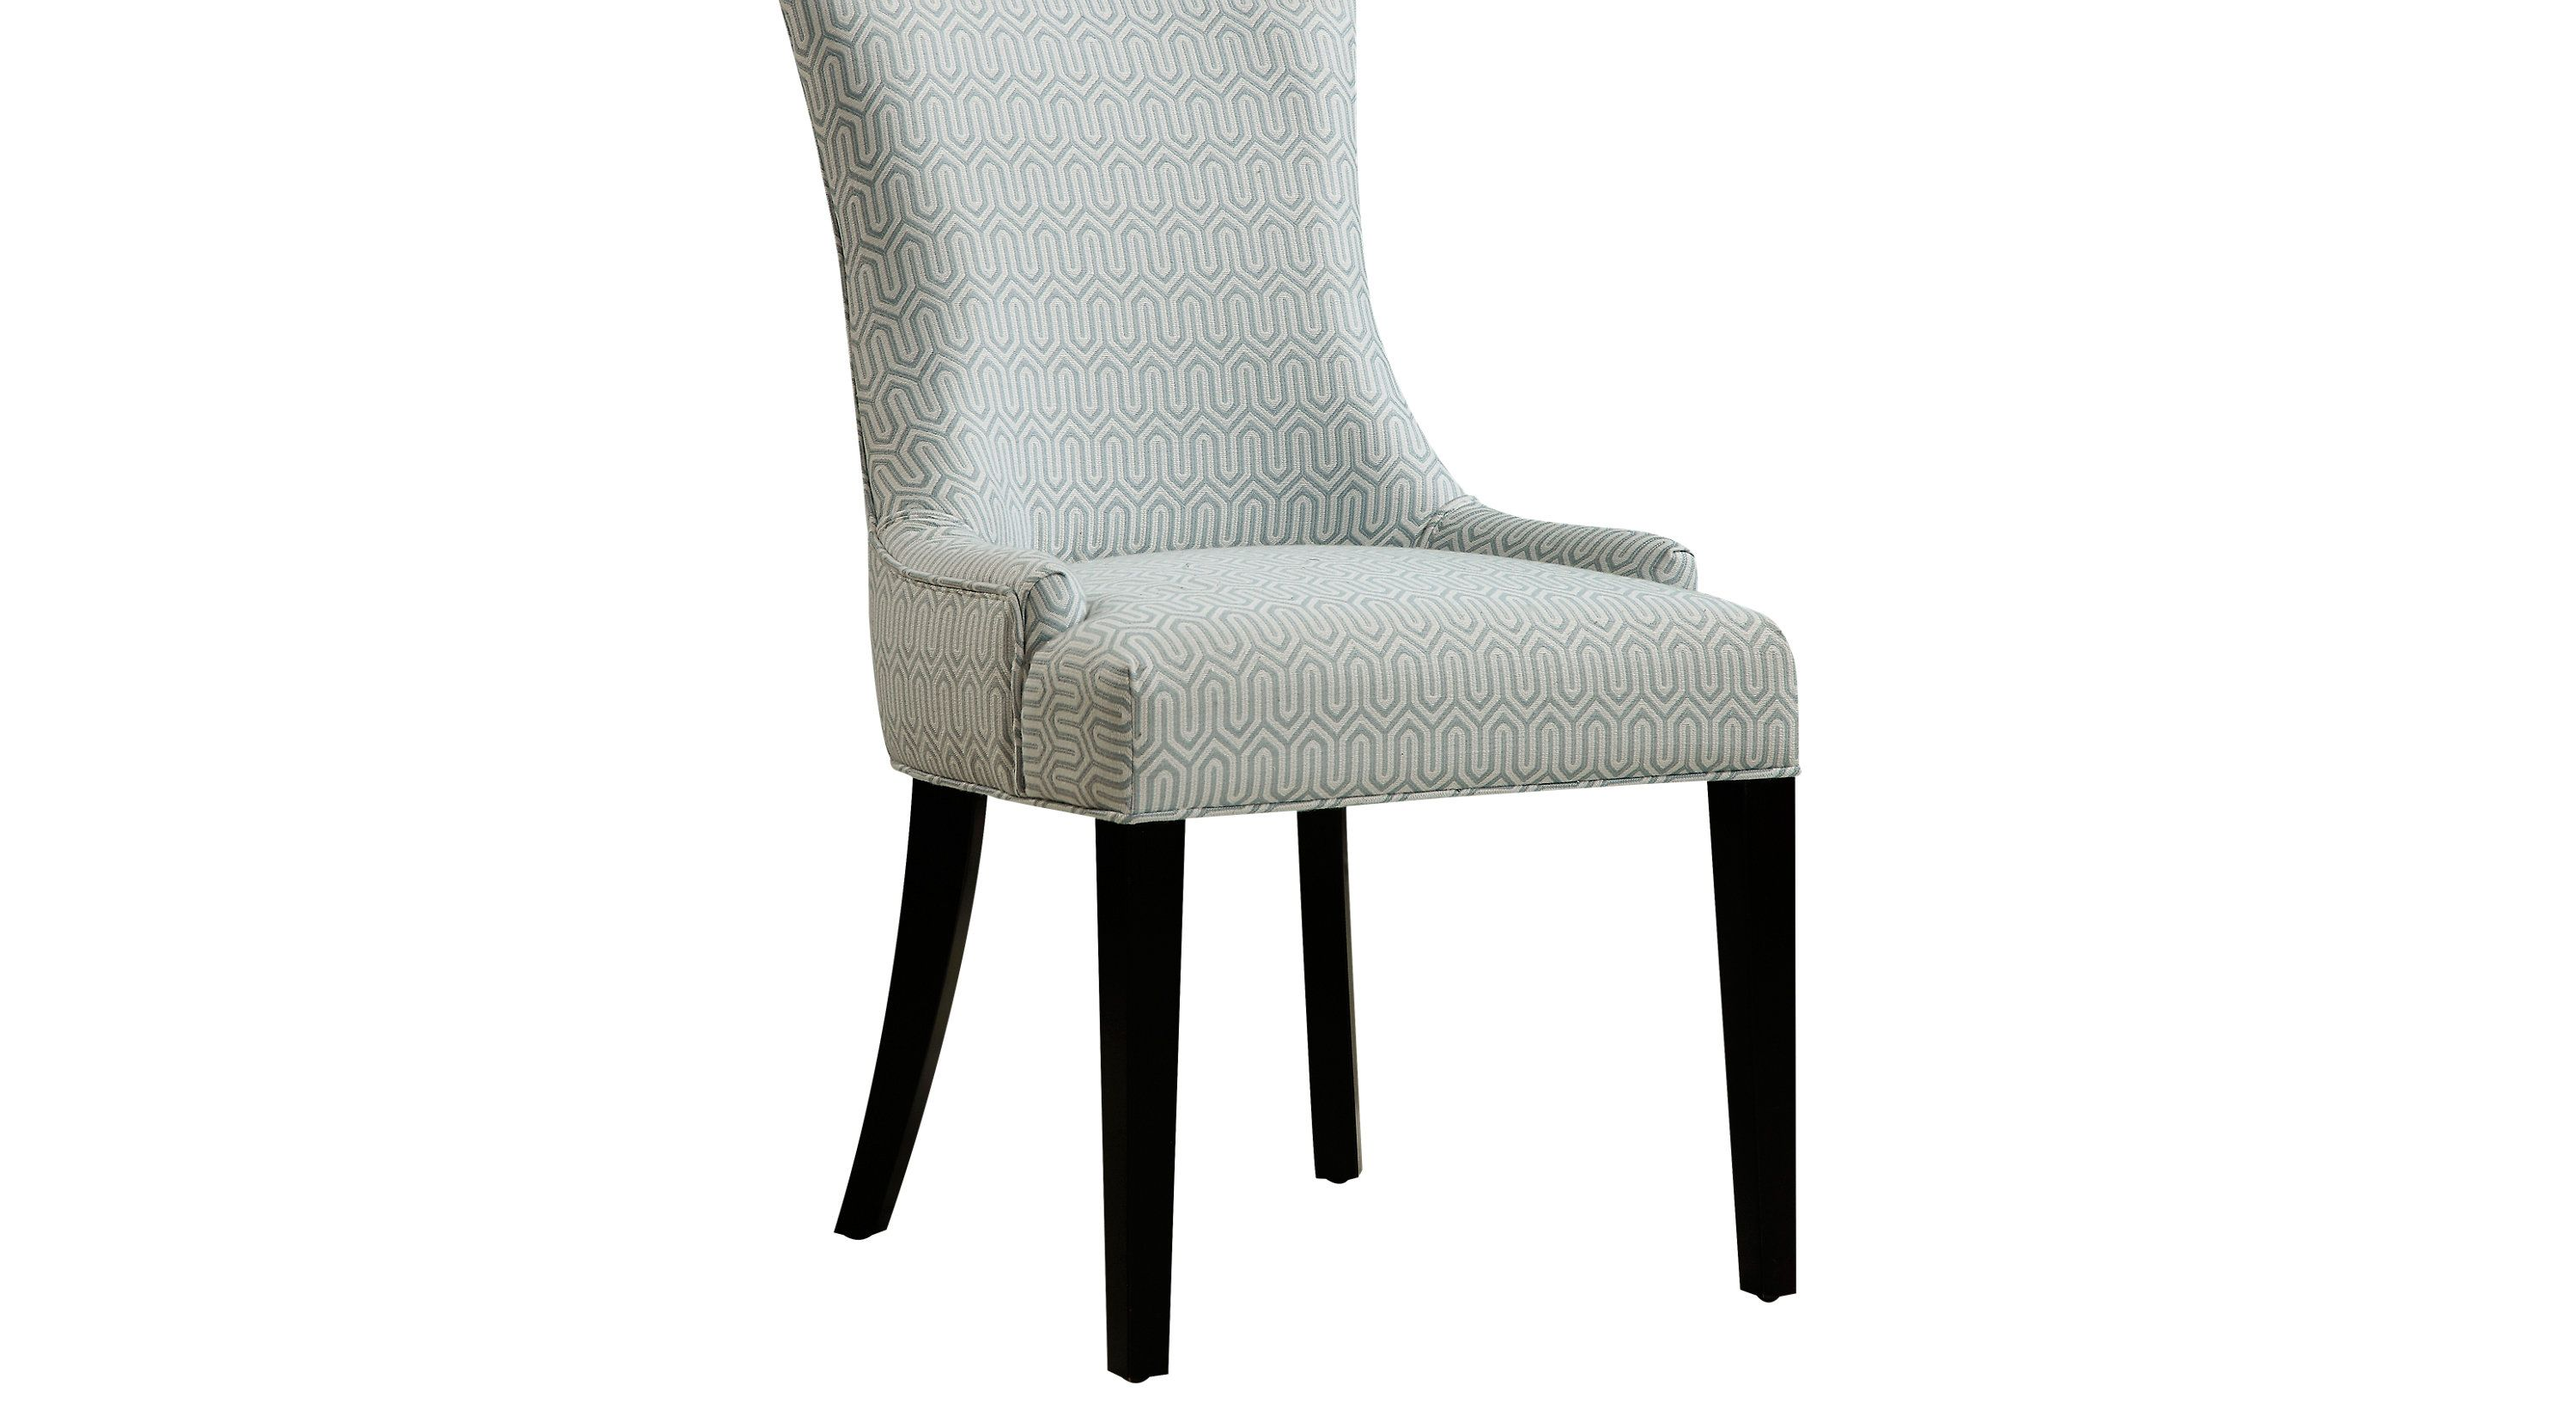 Side Chairs - Rooms To Go - Marlina Gray Dining Chair ...